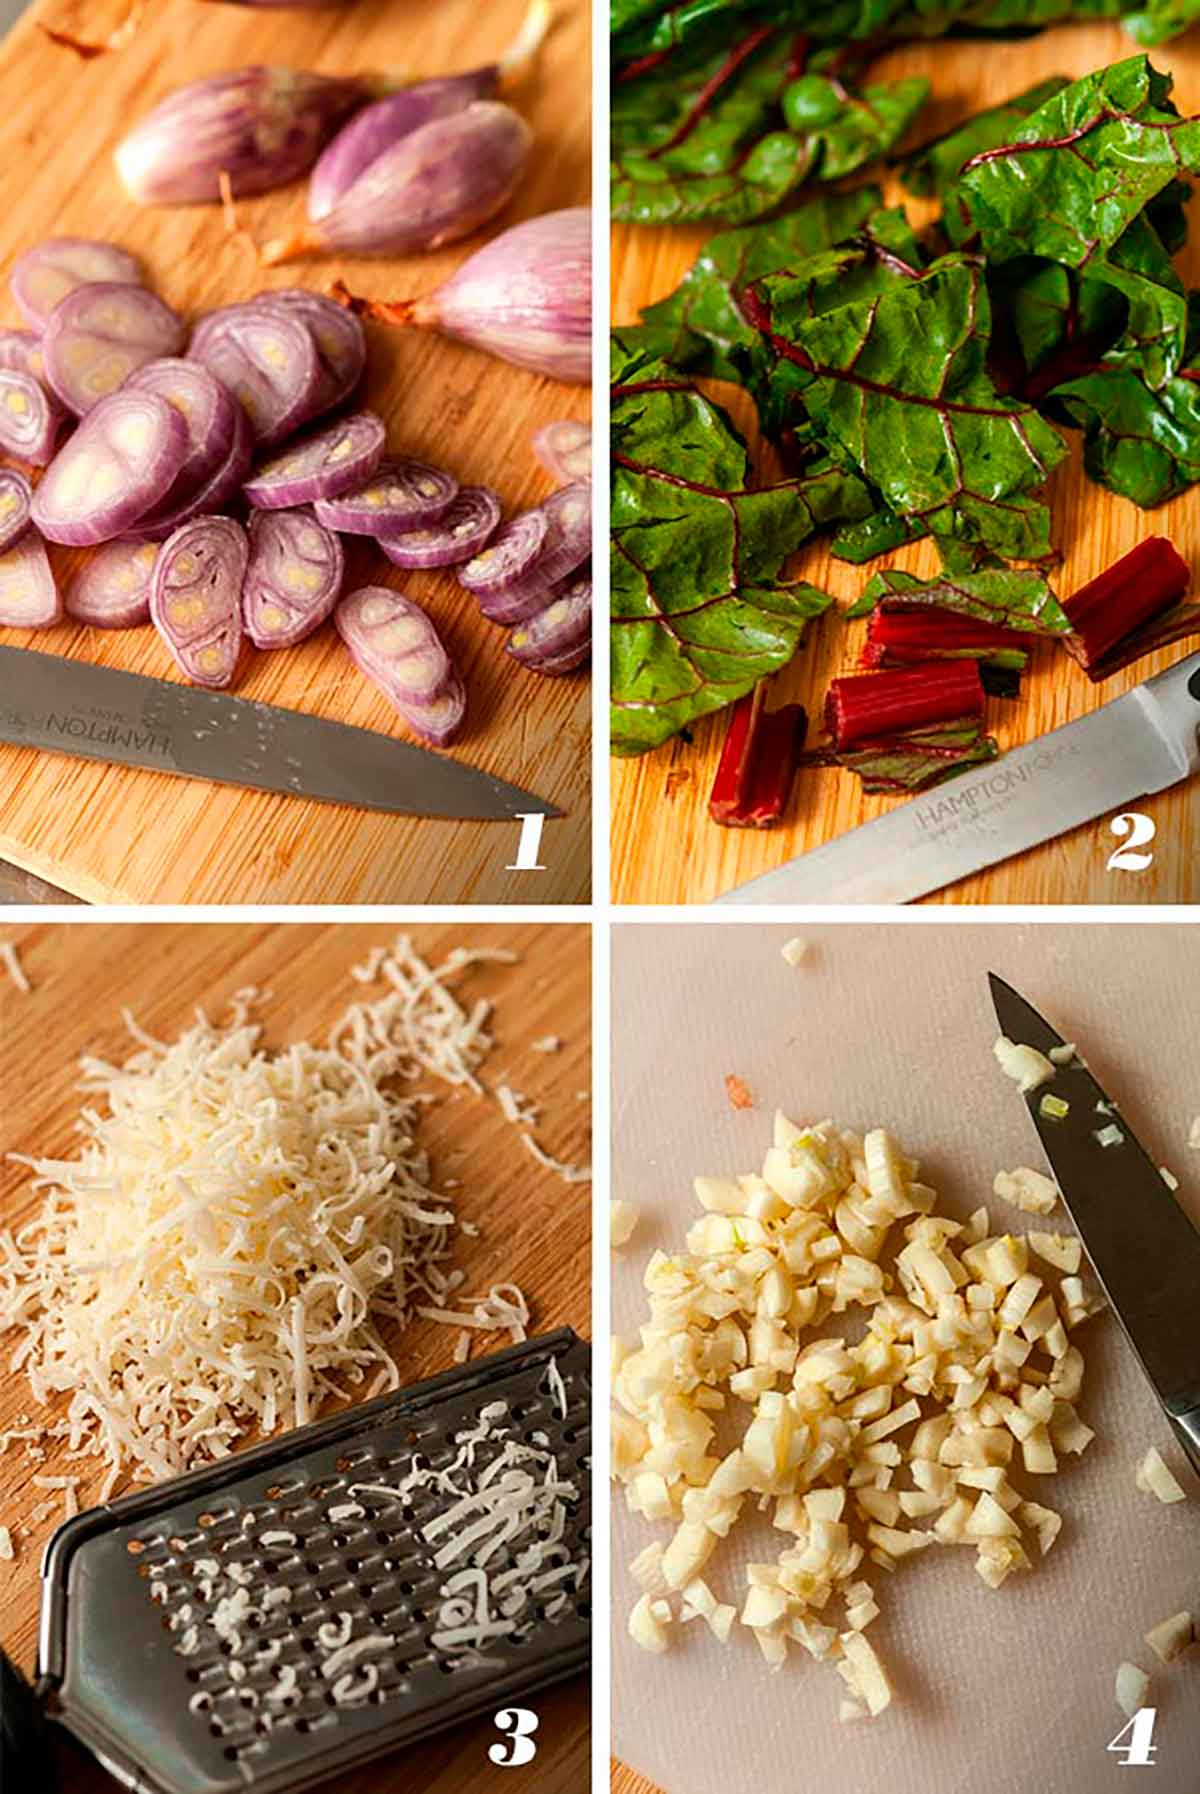 A collage of 4 numbered images showing how to prep ingredients.